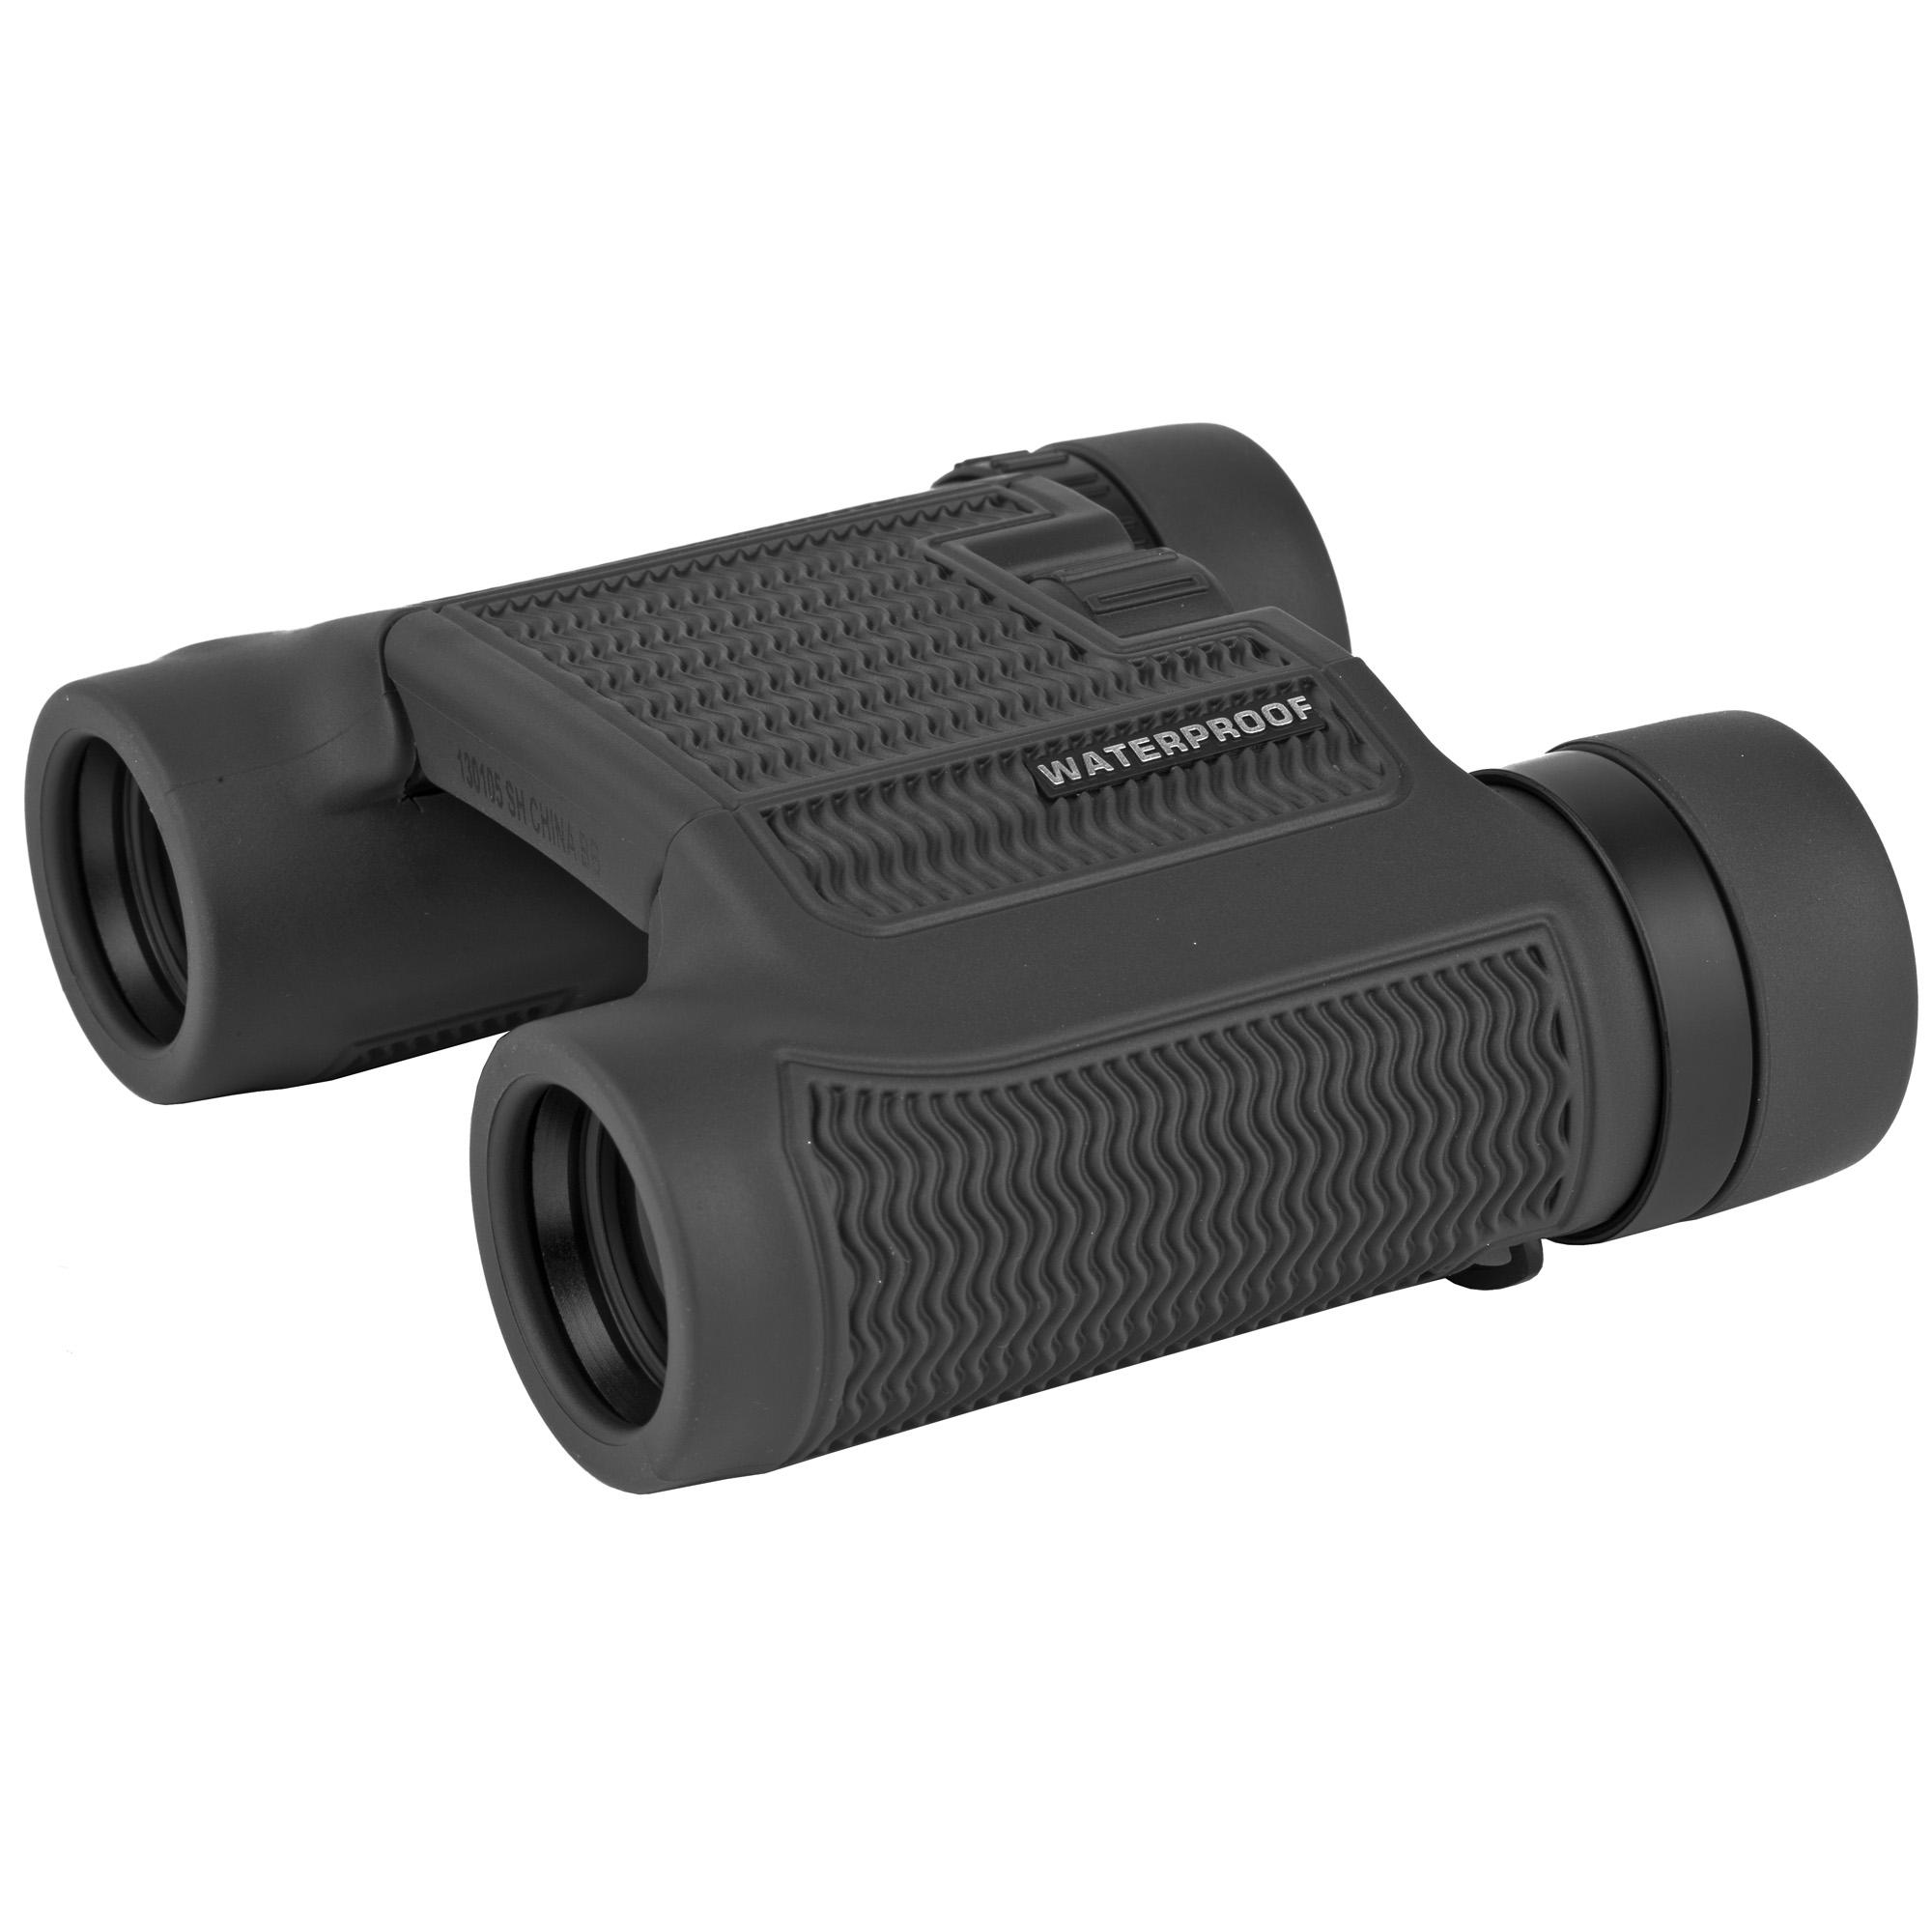 Big 10x magnification in a highly-portable 4.1-inch long package.